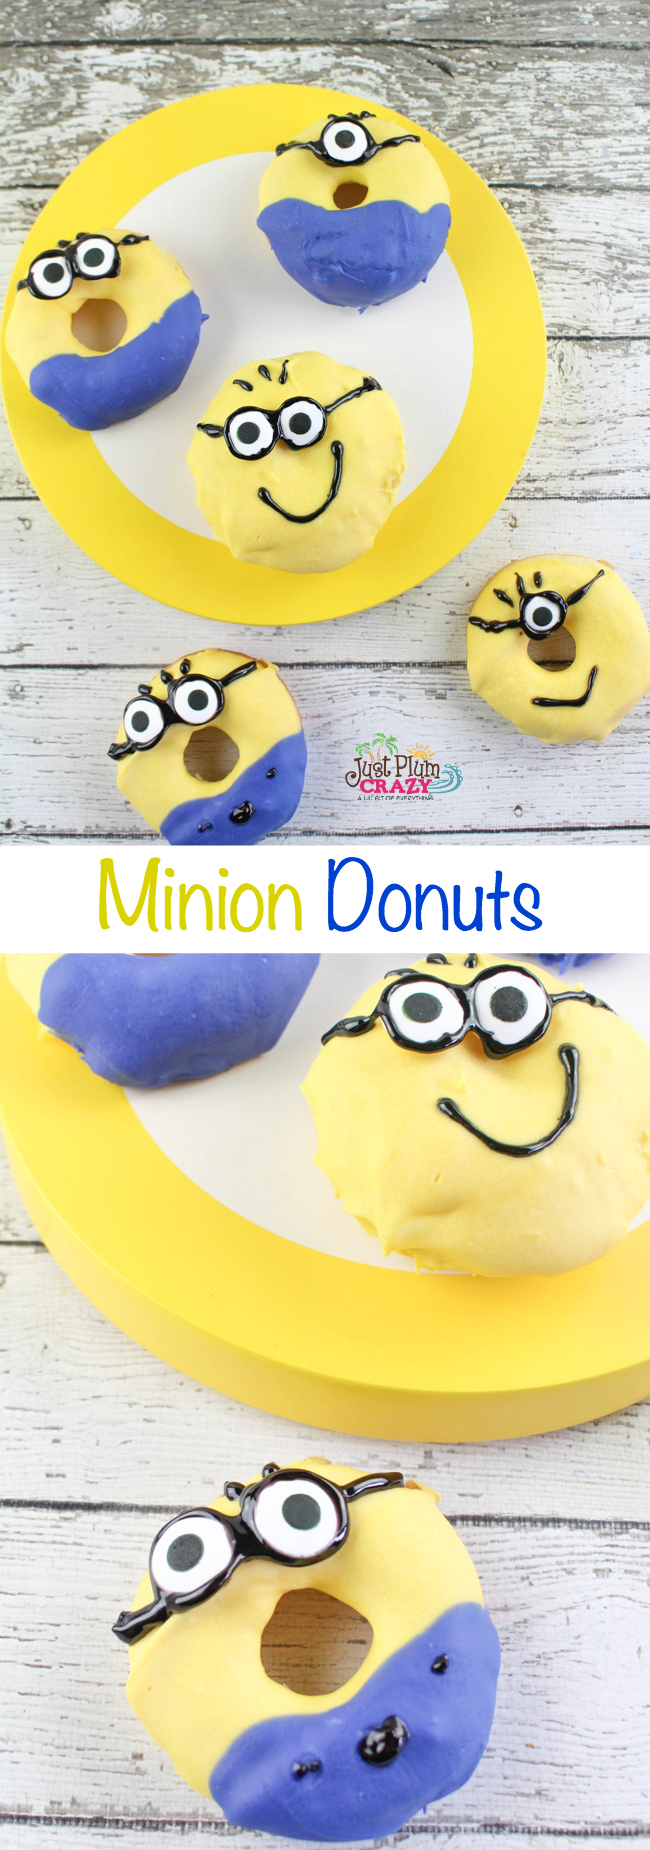 Despicable Me 3 is in theaters now! I have not seen it yet. Meanwhile, we have been making some Minion recipes such as the Minion Donuts recipe.